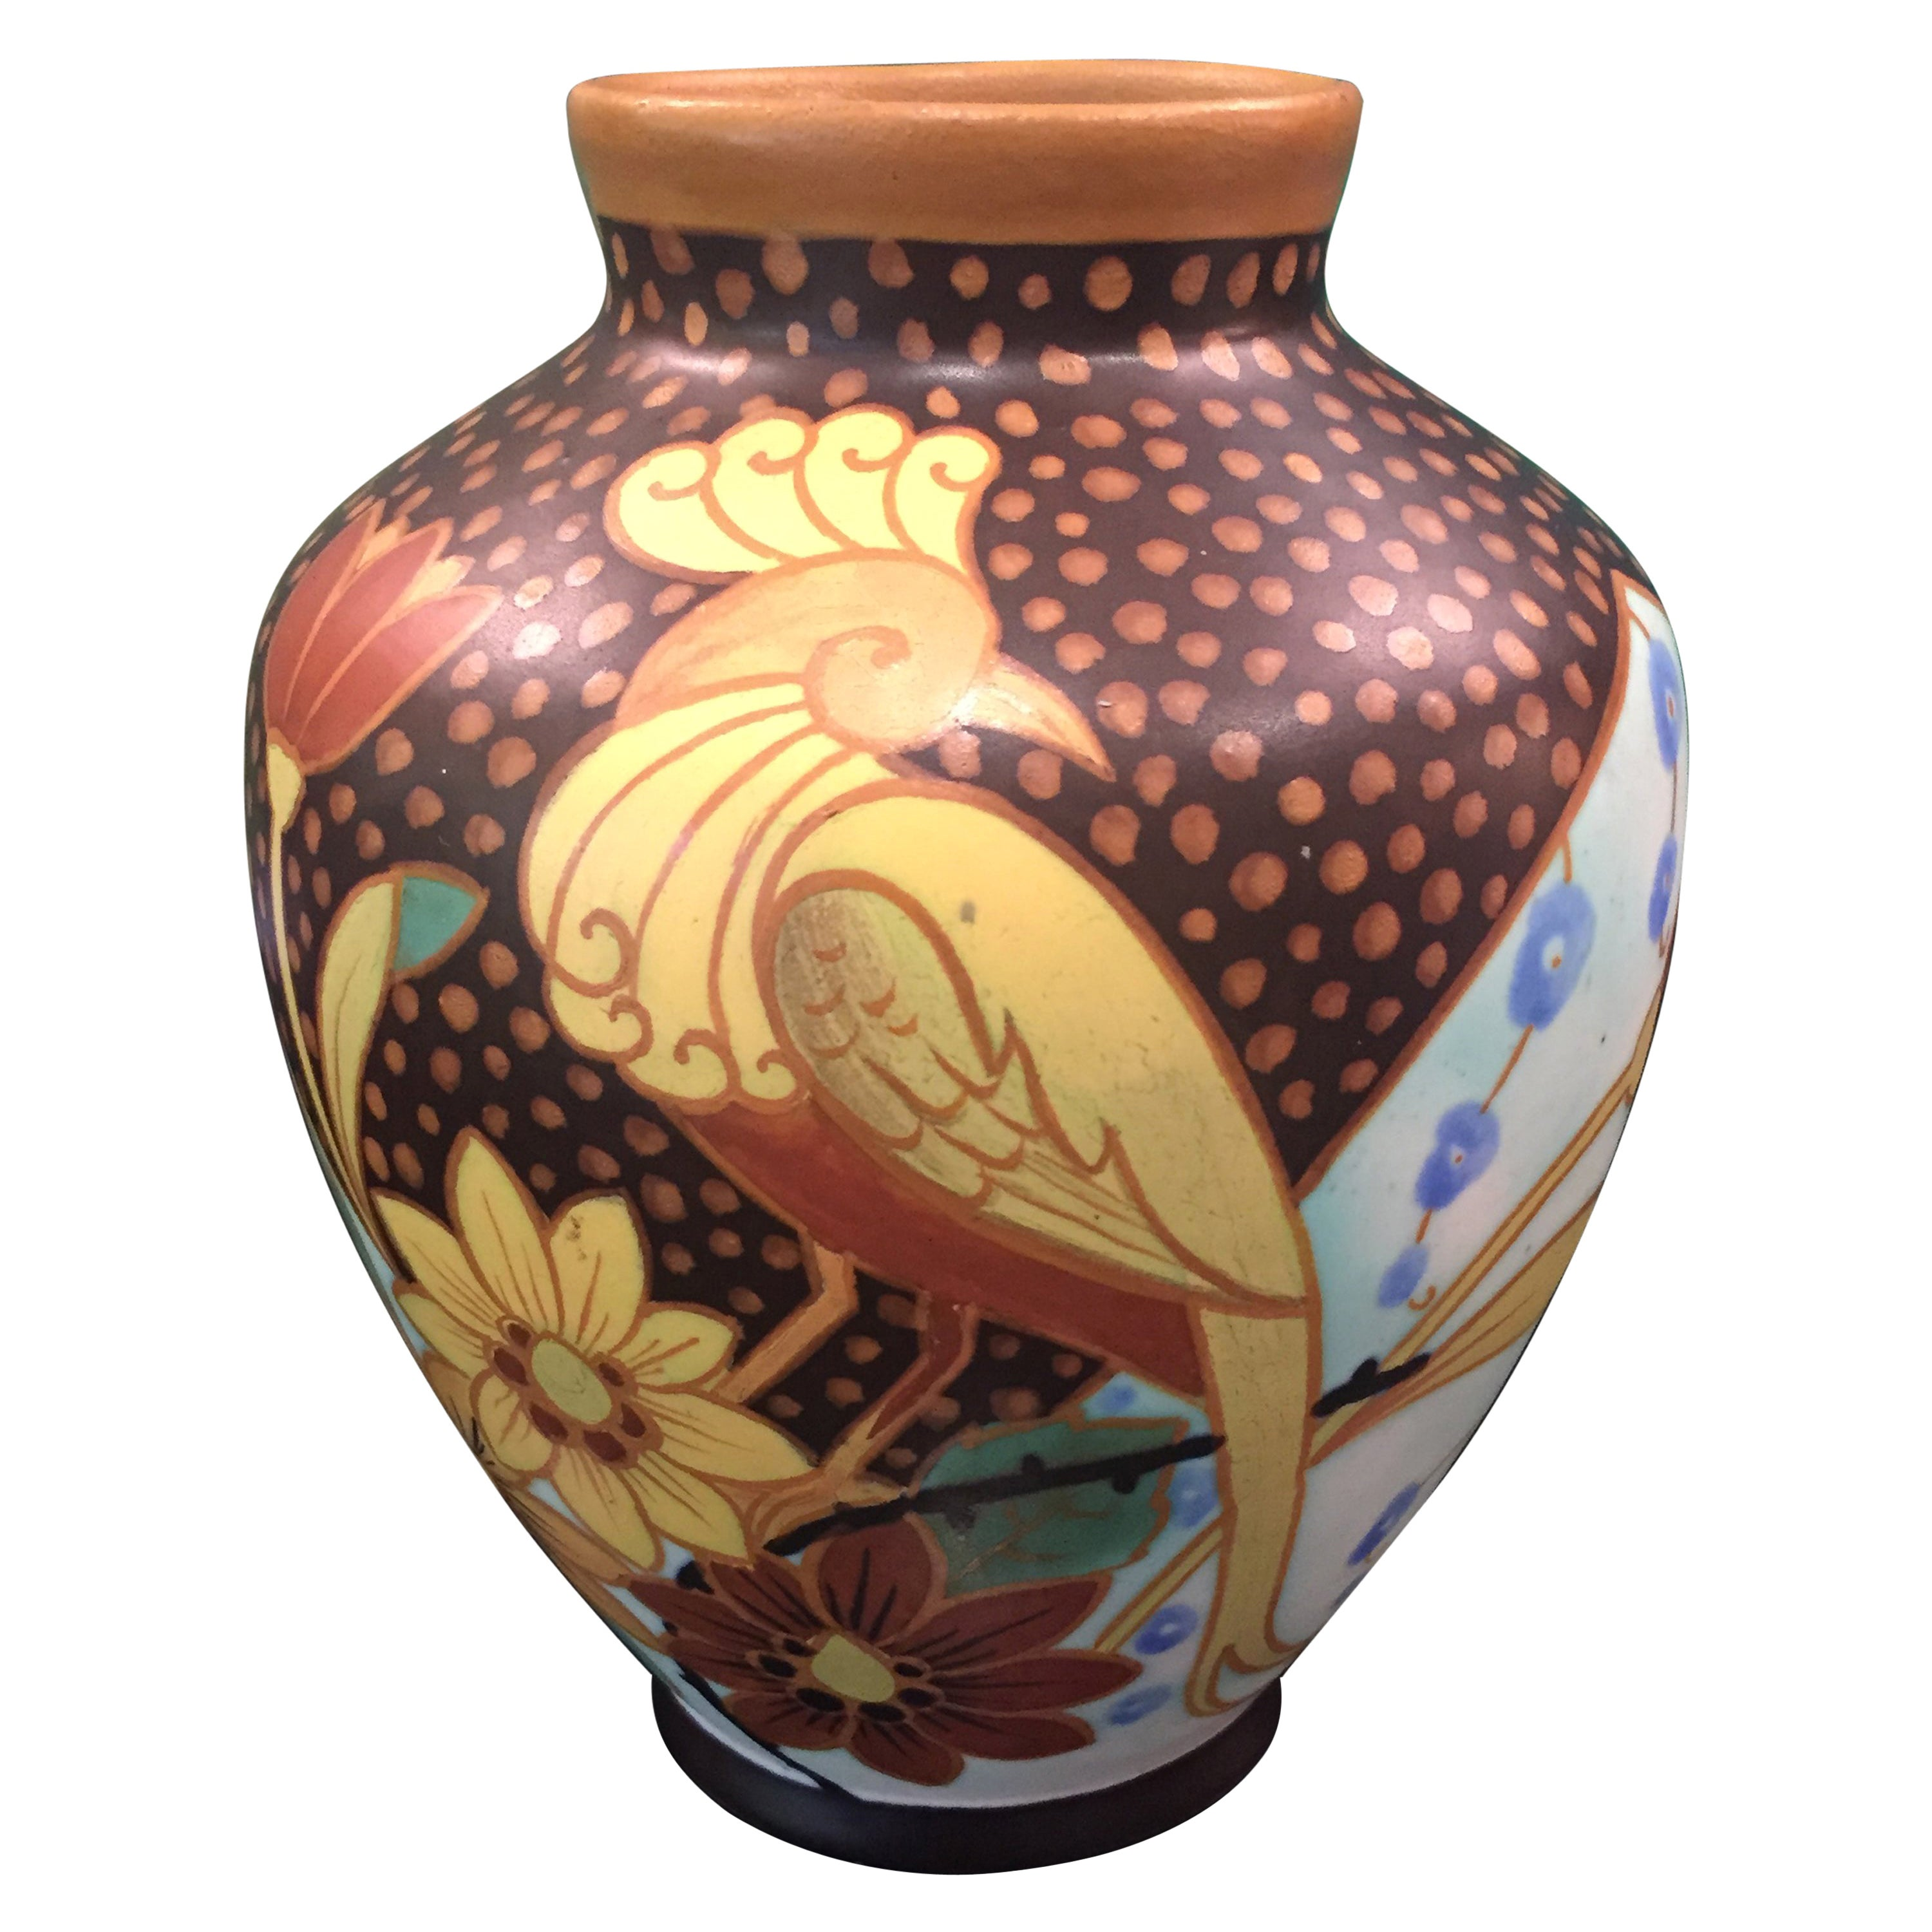 Art Deco Tropical Earthenware Vase by Charles Catteau for Boch Frères Keramis